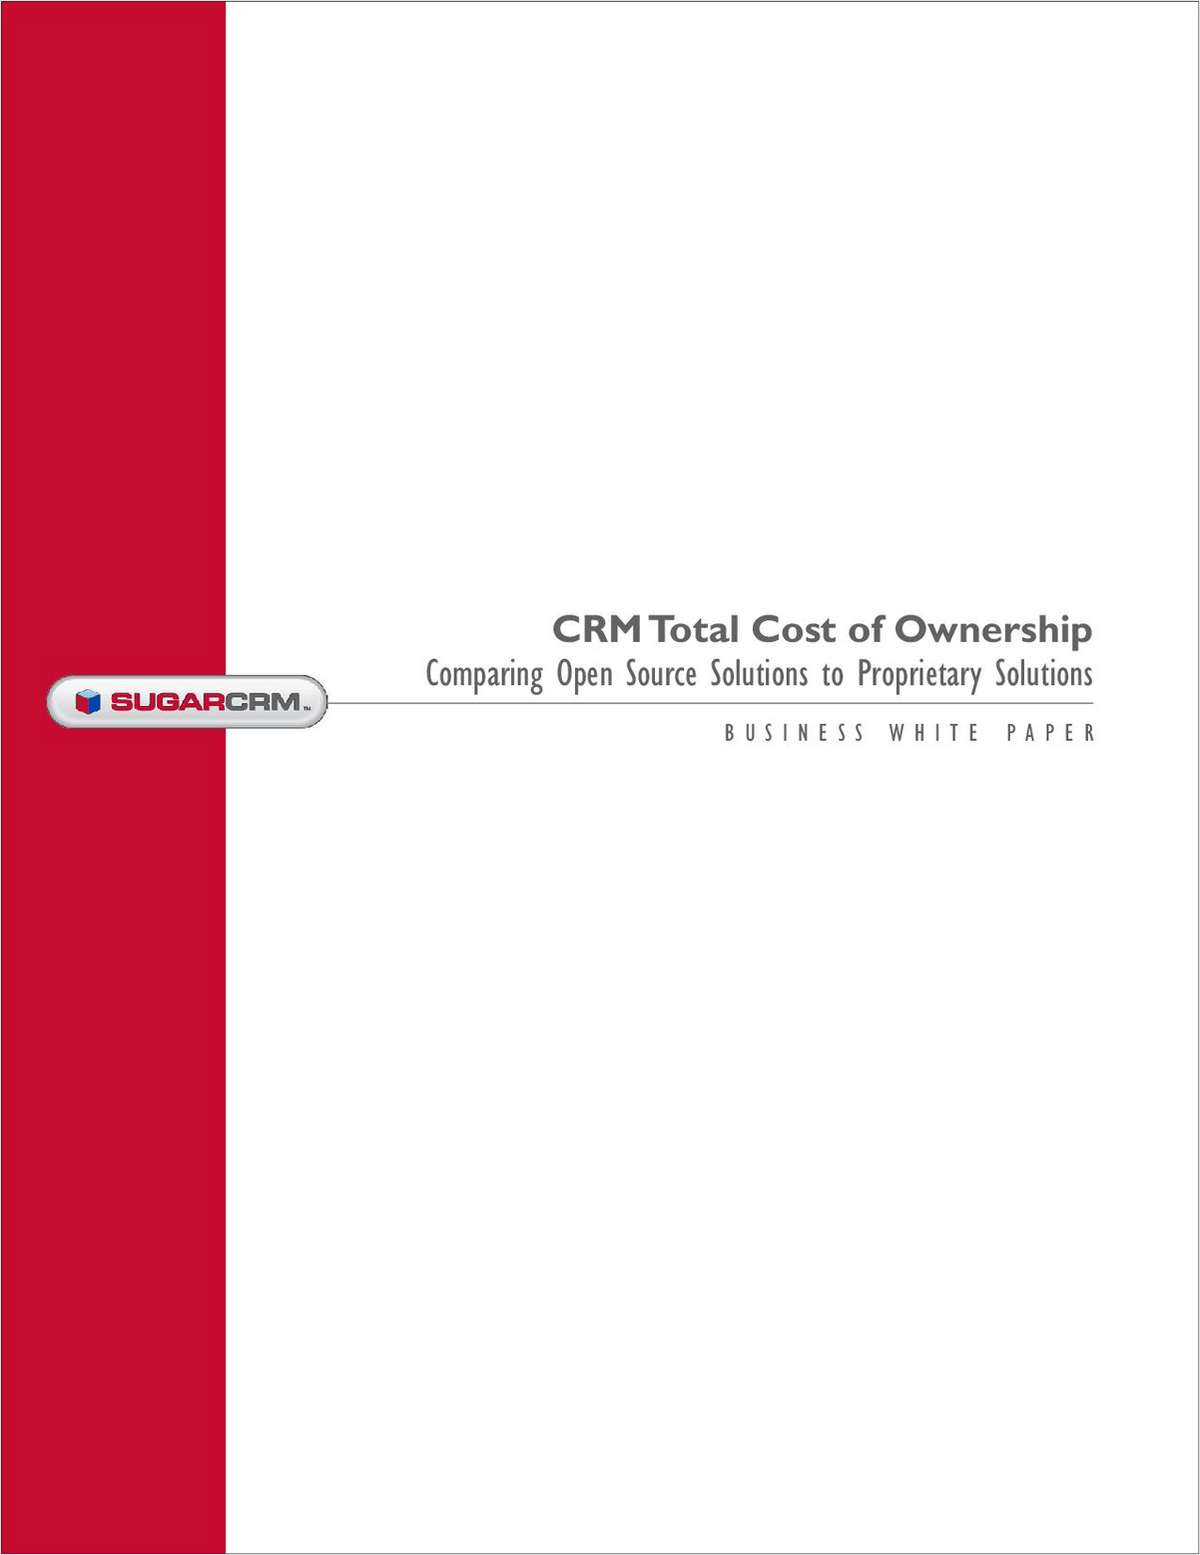 Business Strategy: CRM Total Cost of Ownership